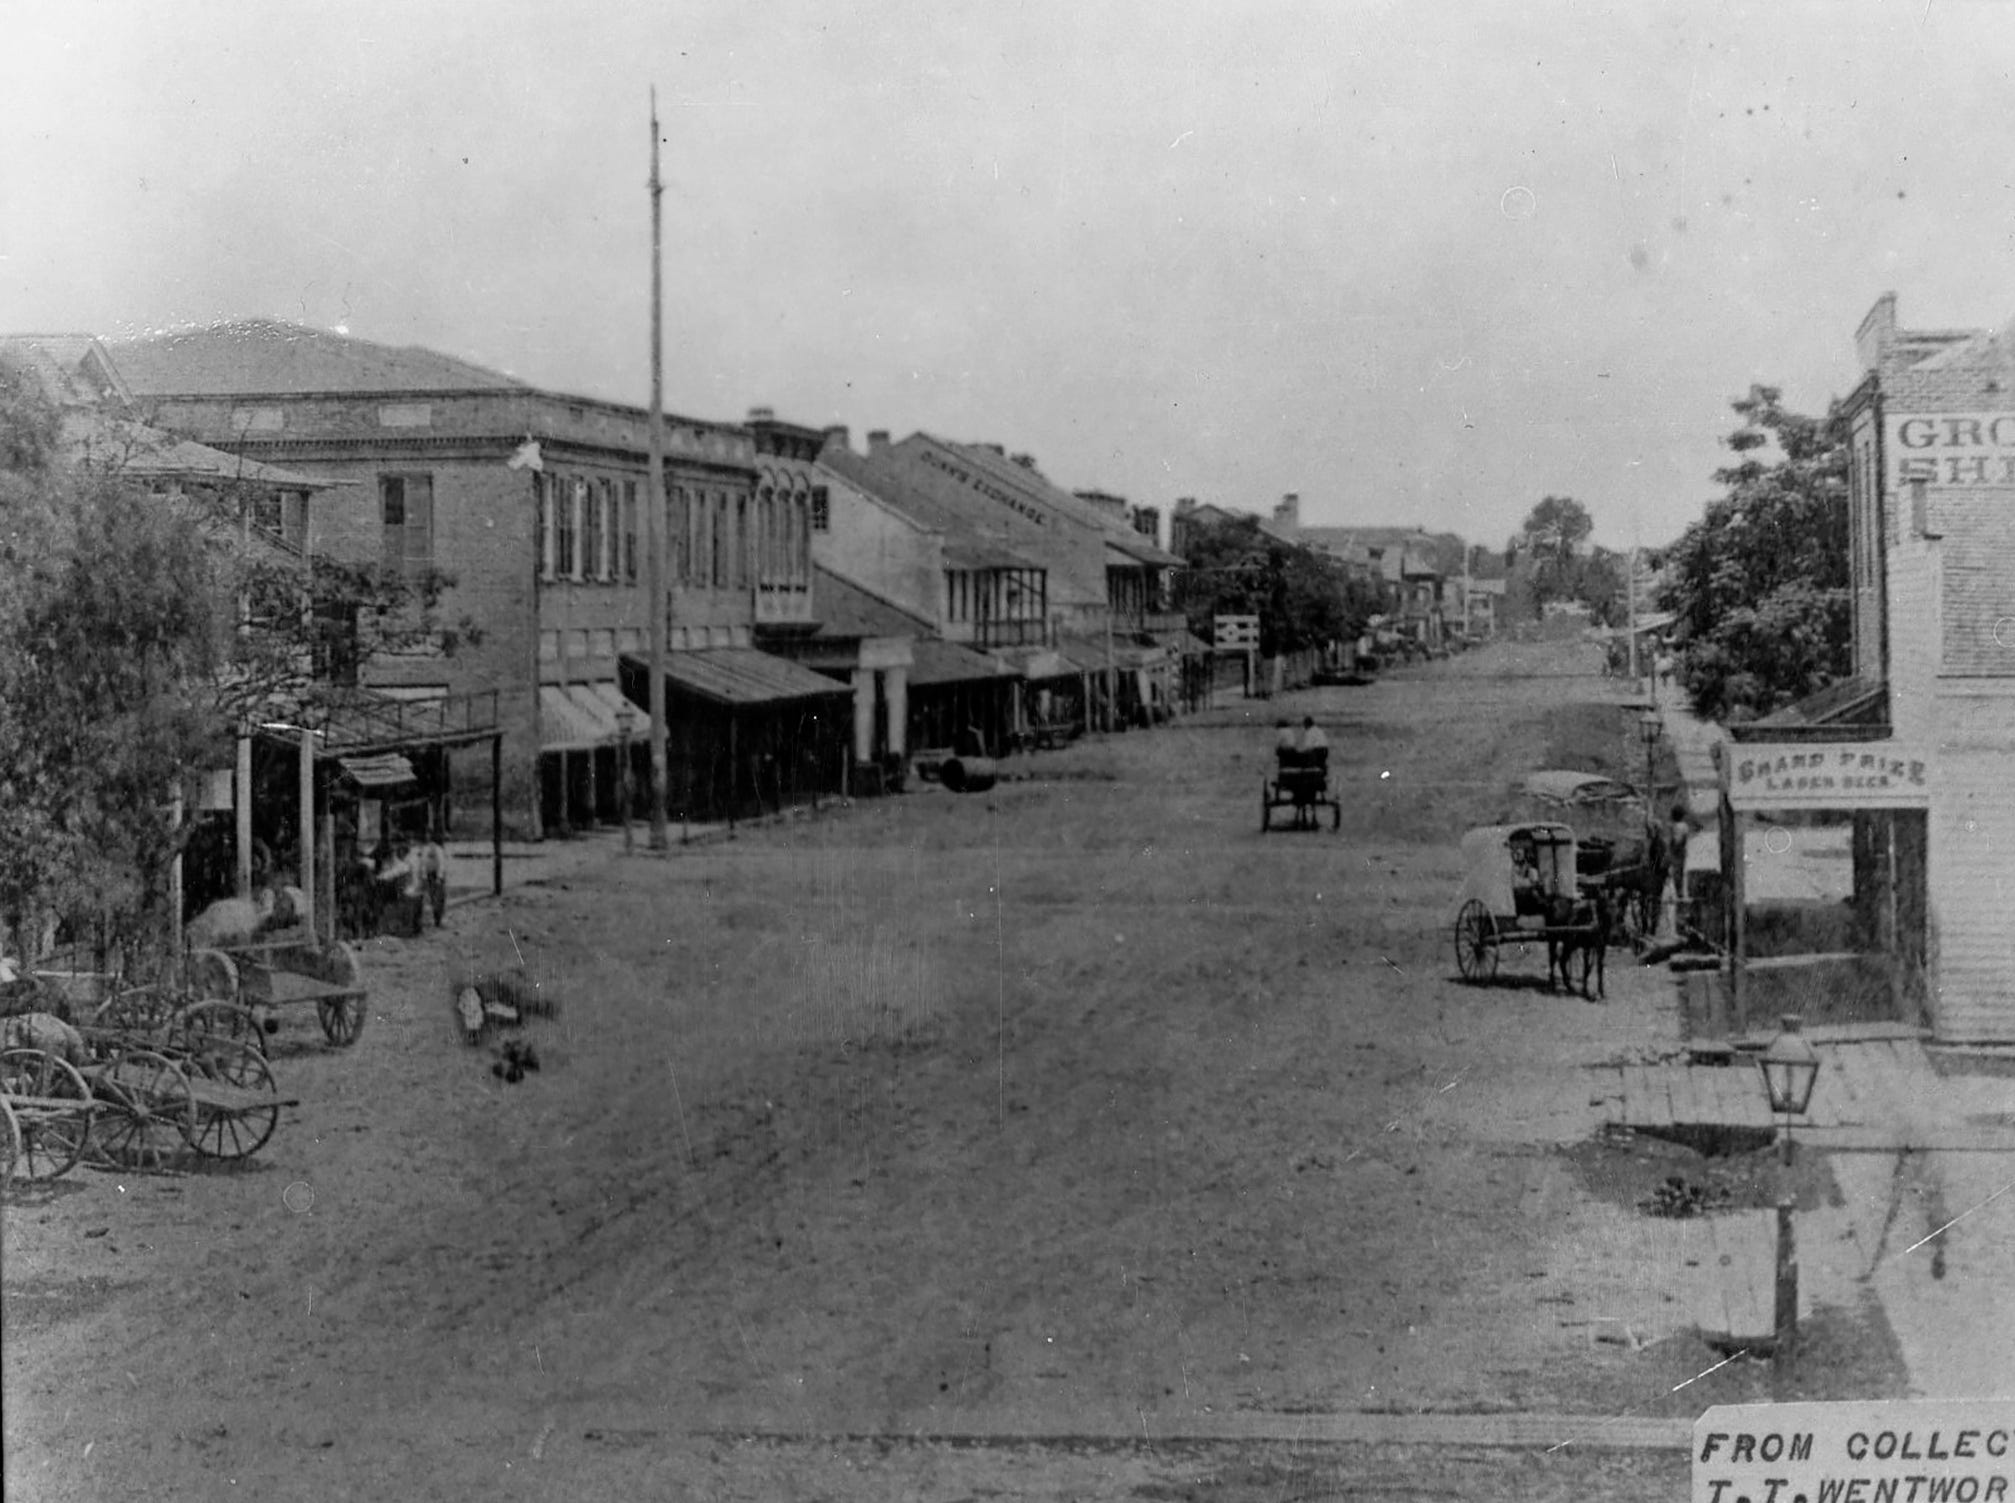 Palafox Street looking north, showing two-wheel horse-drawn carts on sandy streets, 1876.